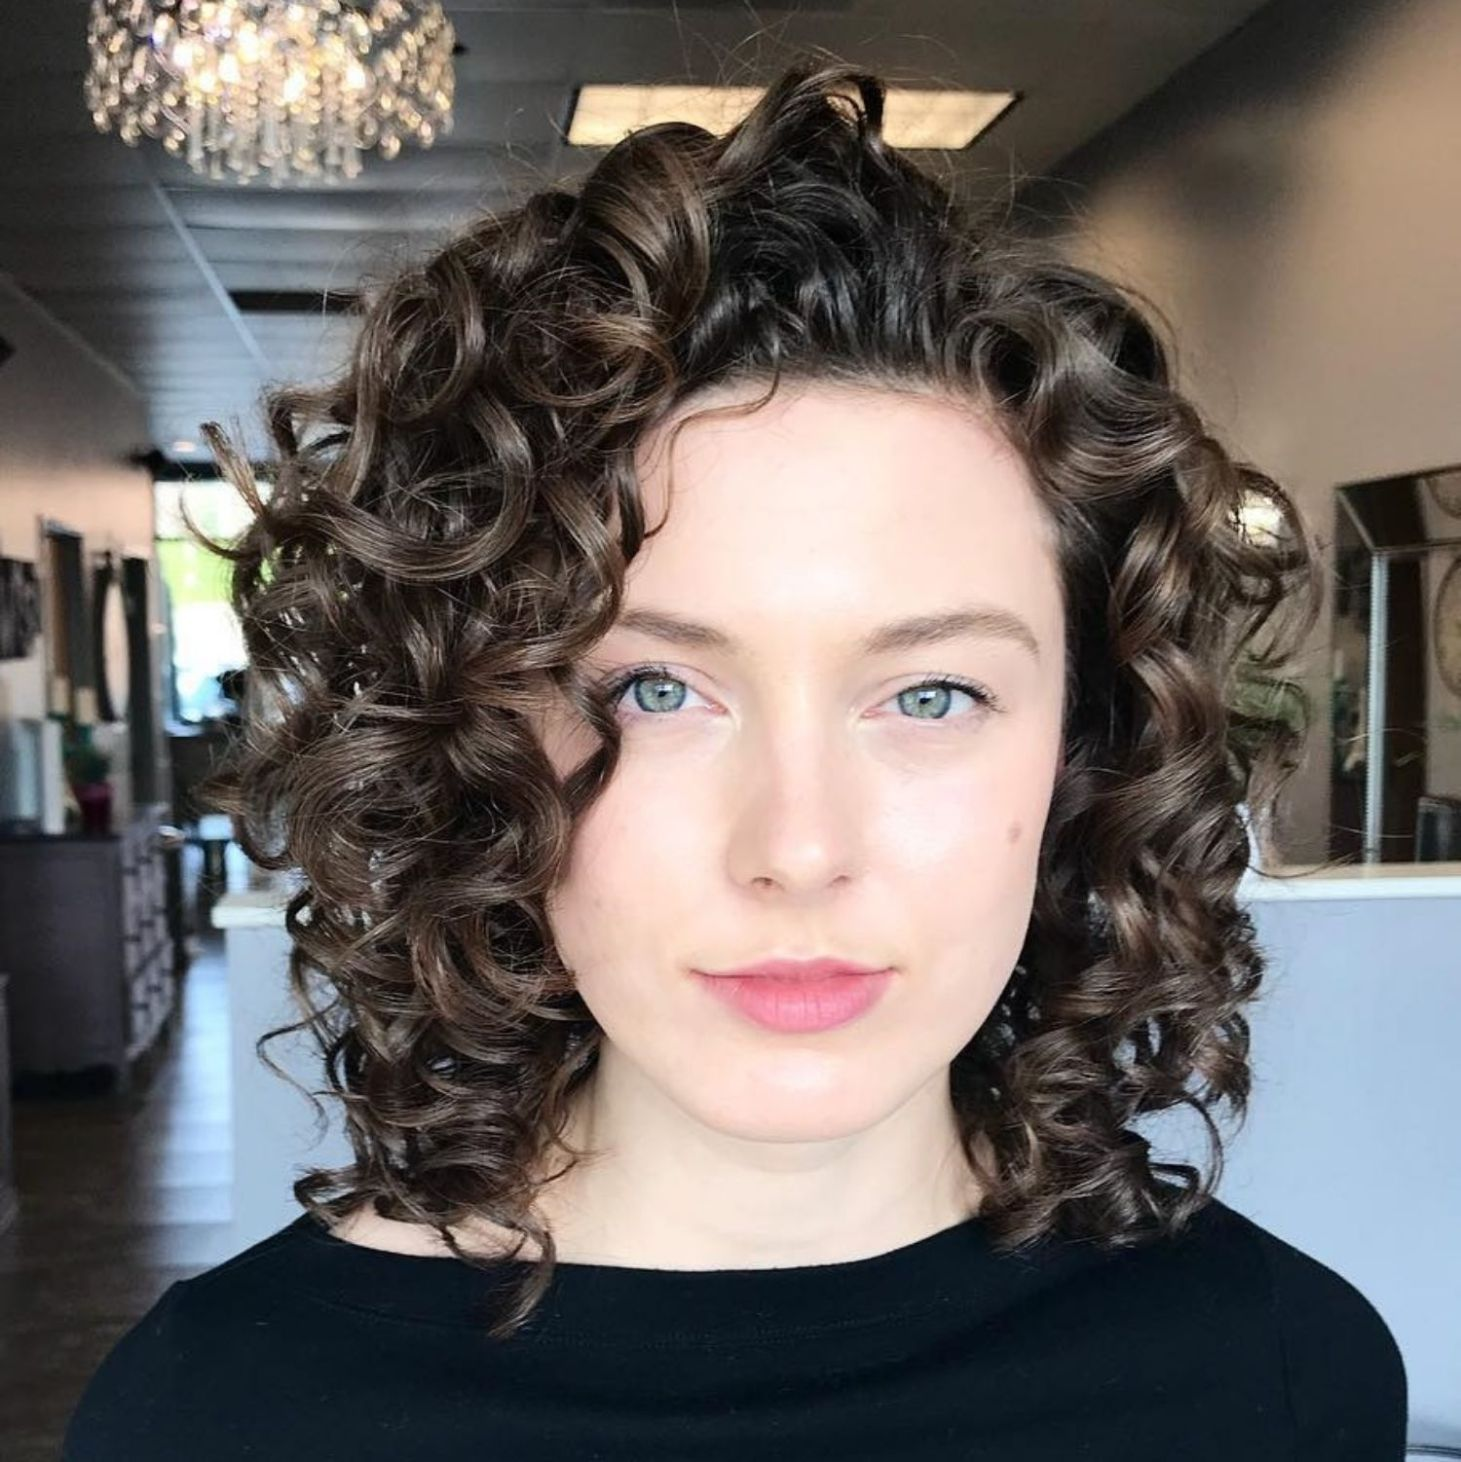 65 Different Versions Of Curly Bob Hairstyle Curly Hair Styles Medium Length Hair Styles Curly Bob Hairstyles